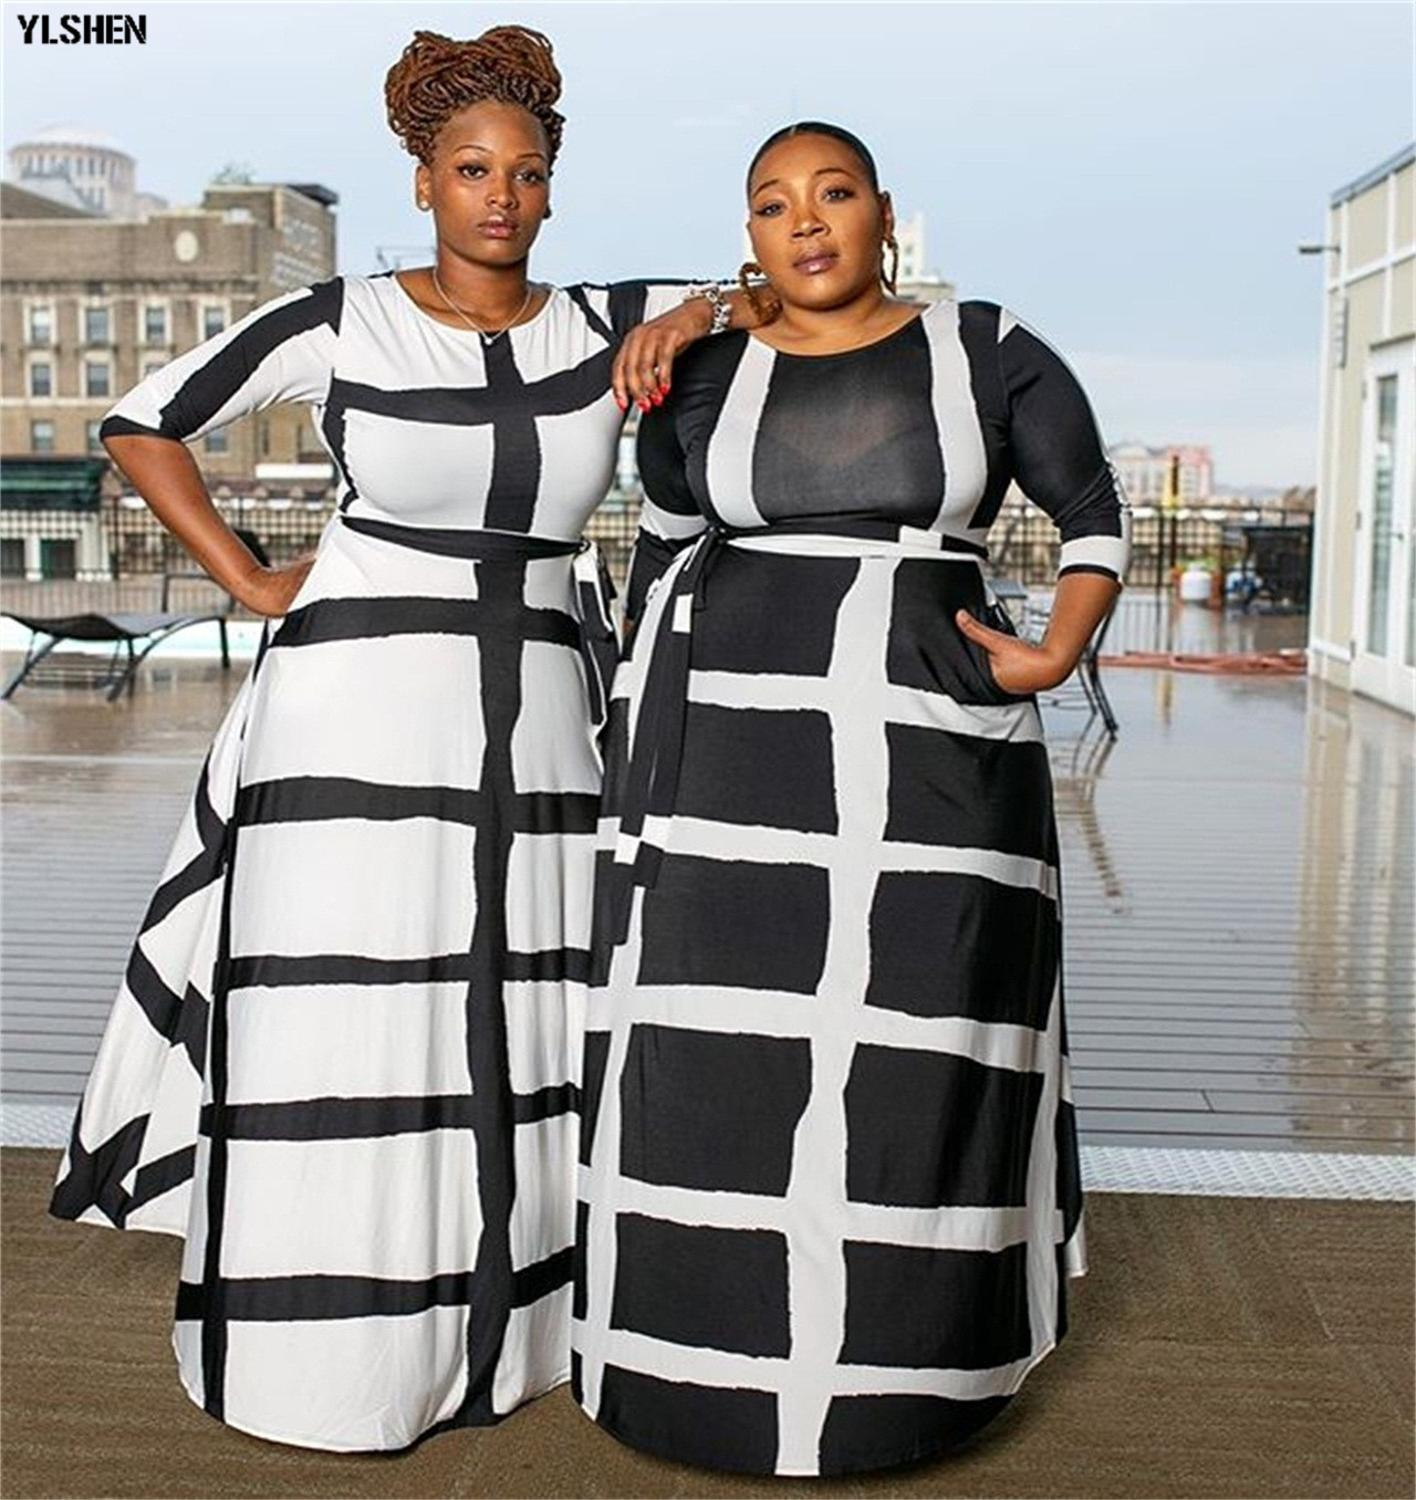 5XL African Dresses For Women Dashiki African Clothes Fashion Basin Riche Positioning Print Long Sleeve Black White Africa Dress